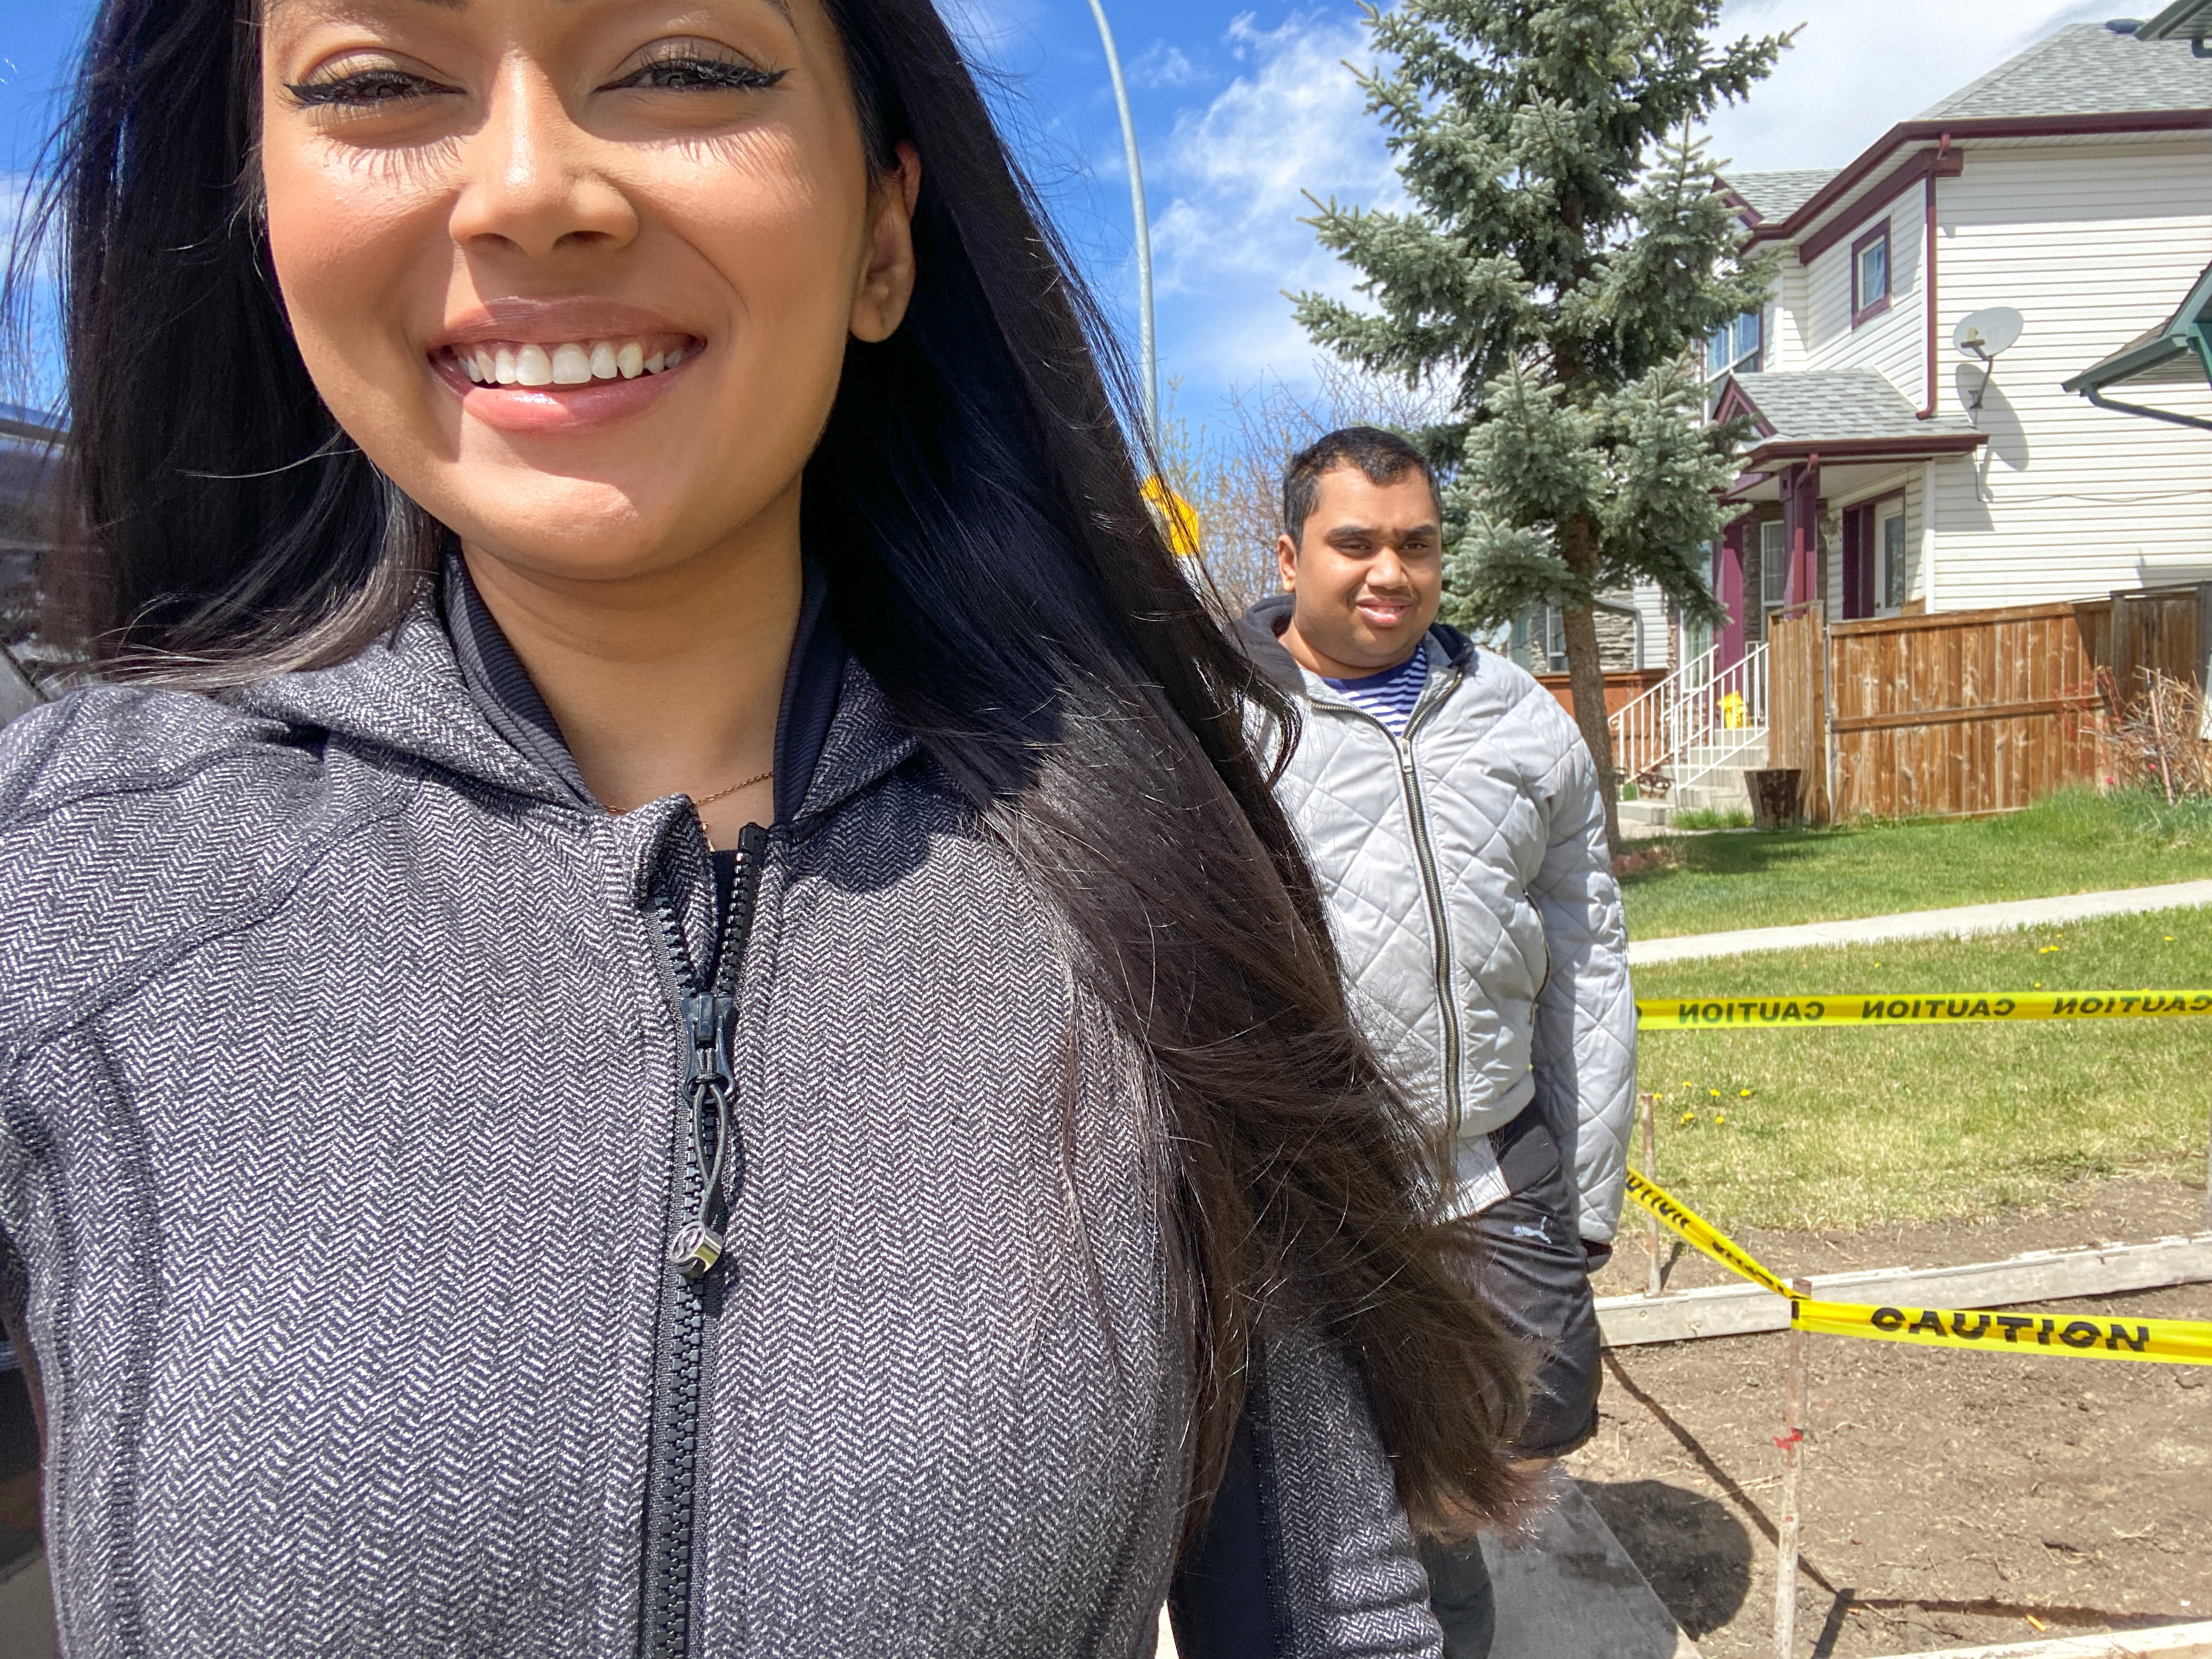 A selfie of Naz and her brother Ridwan during one of their outdoor walks. It is a beautiful day with blue skies and Naz is smiling.